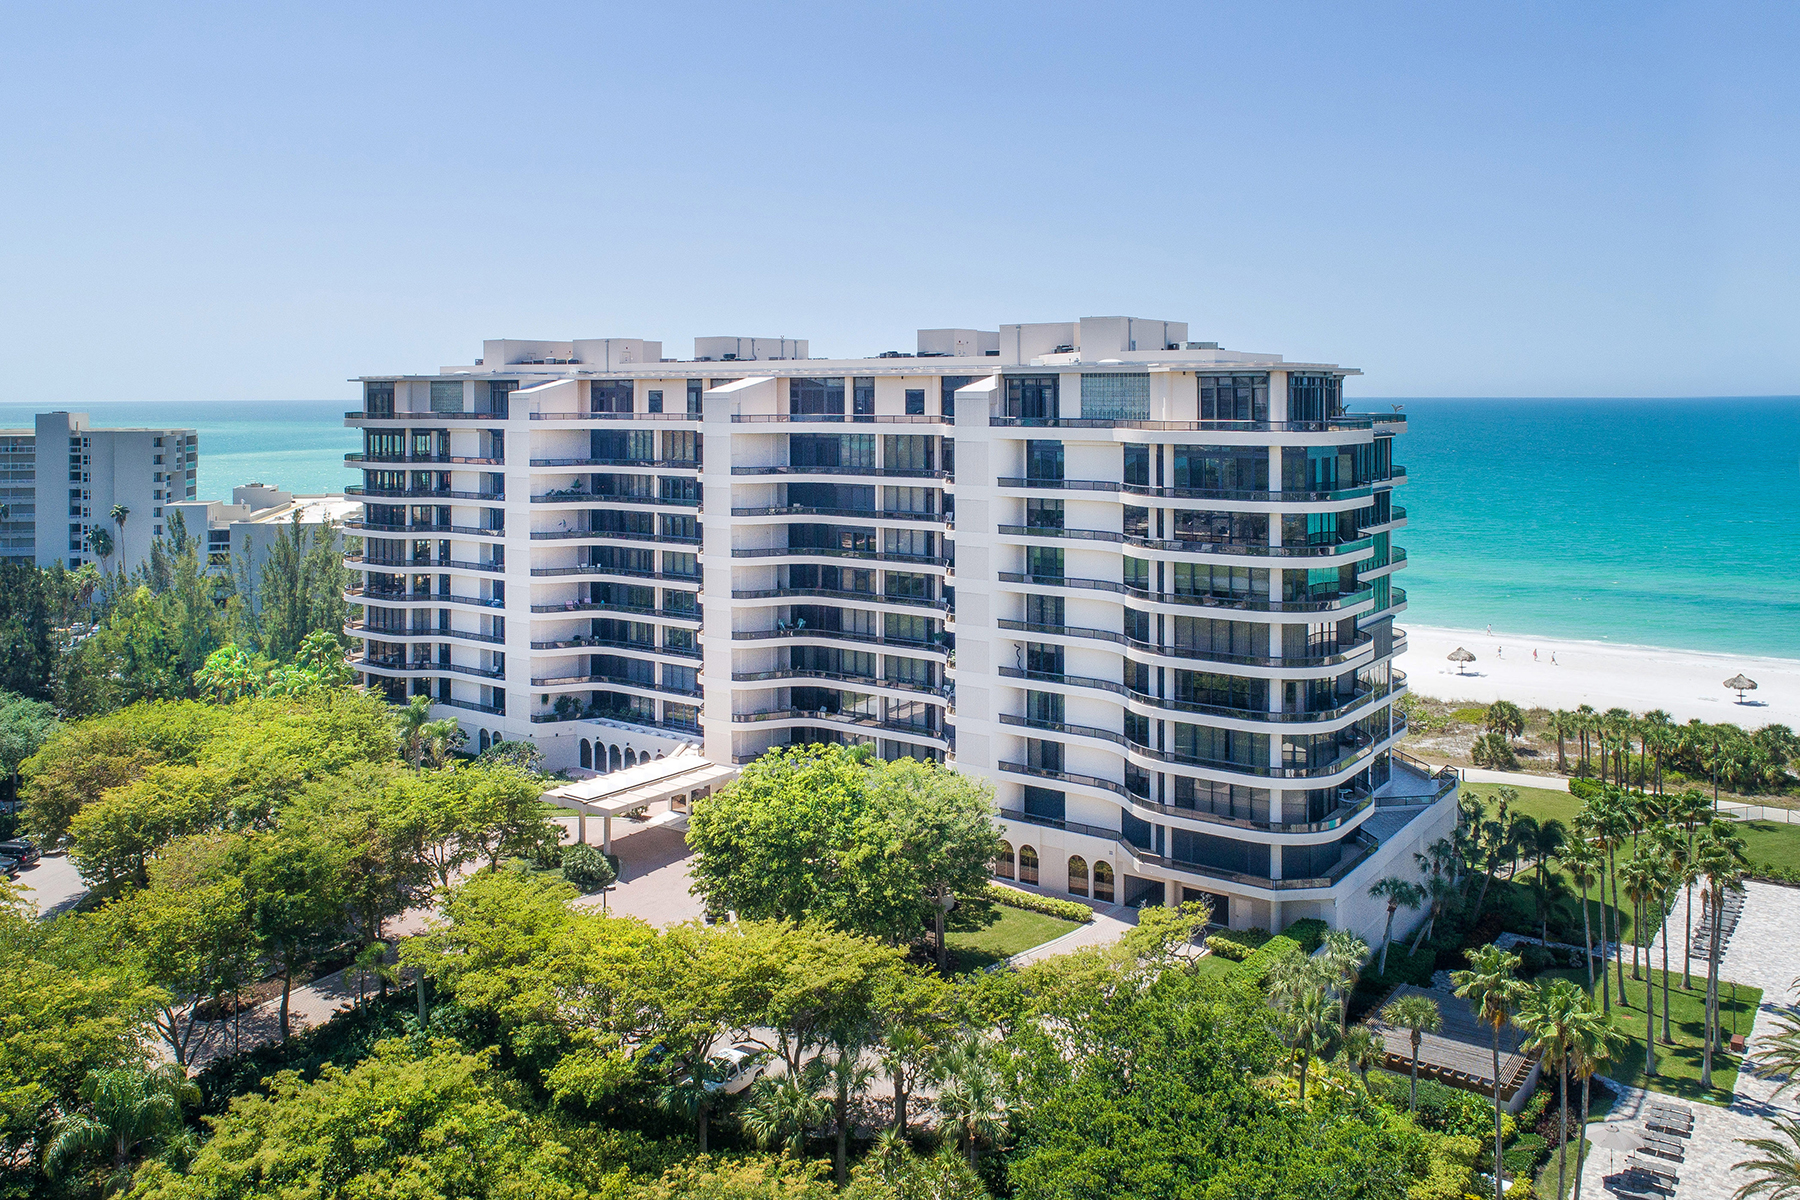 Condominium for Sale at L'AMBIANCE 415 L Ambiance Dr A601, Longboat Key, Florida 34228 United States